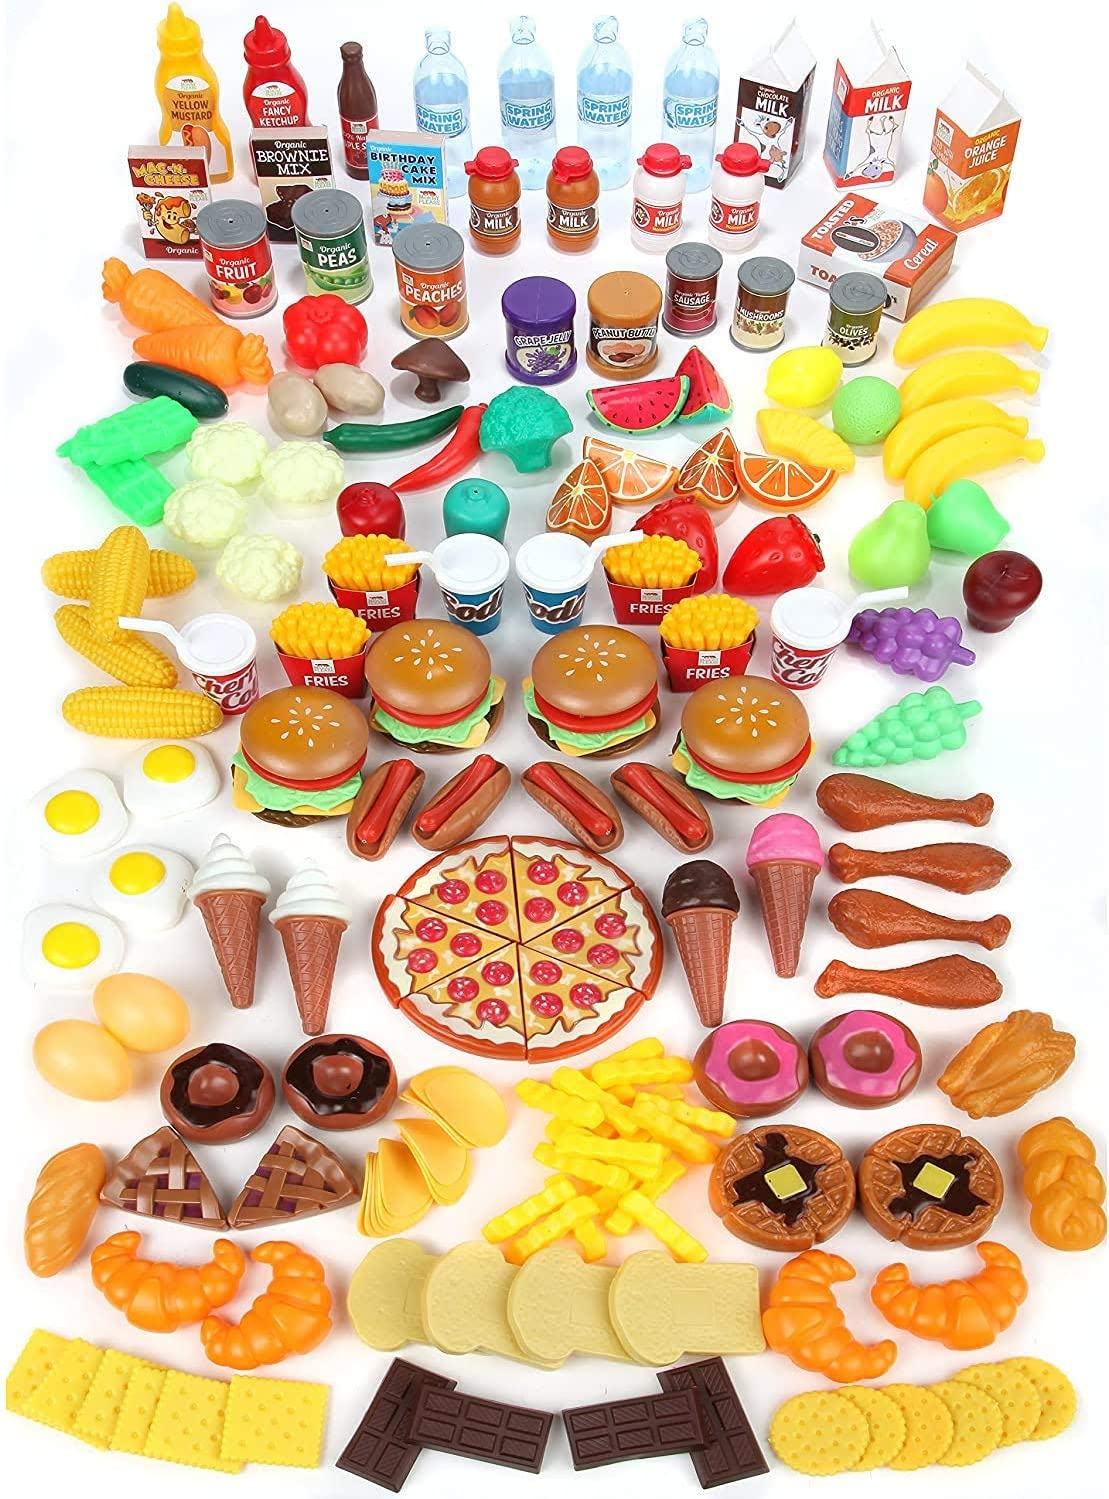 MEDca Kids Play Food Set - 130 Piece Pretend Play Food Collection - Assorted Fake Food Set Includes Fruits Vegetables Snacks Dessert Juices Canned Goods and More for Boys and Girls